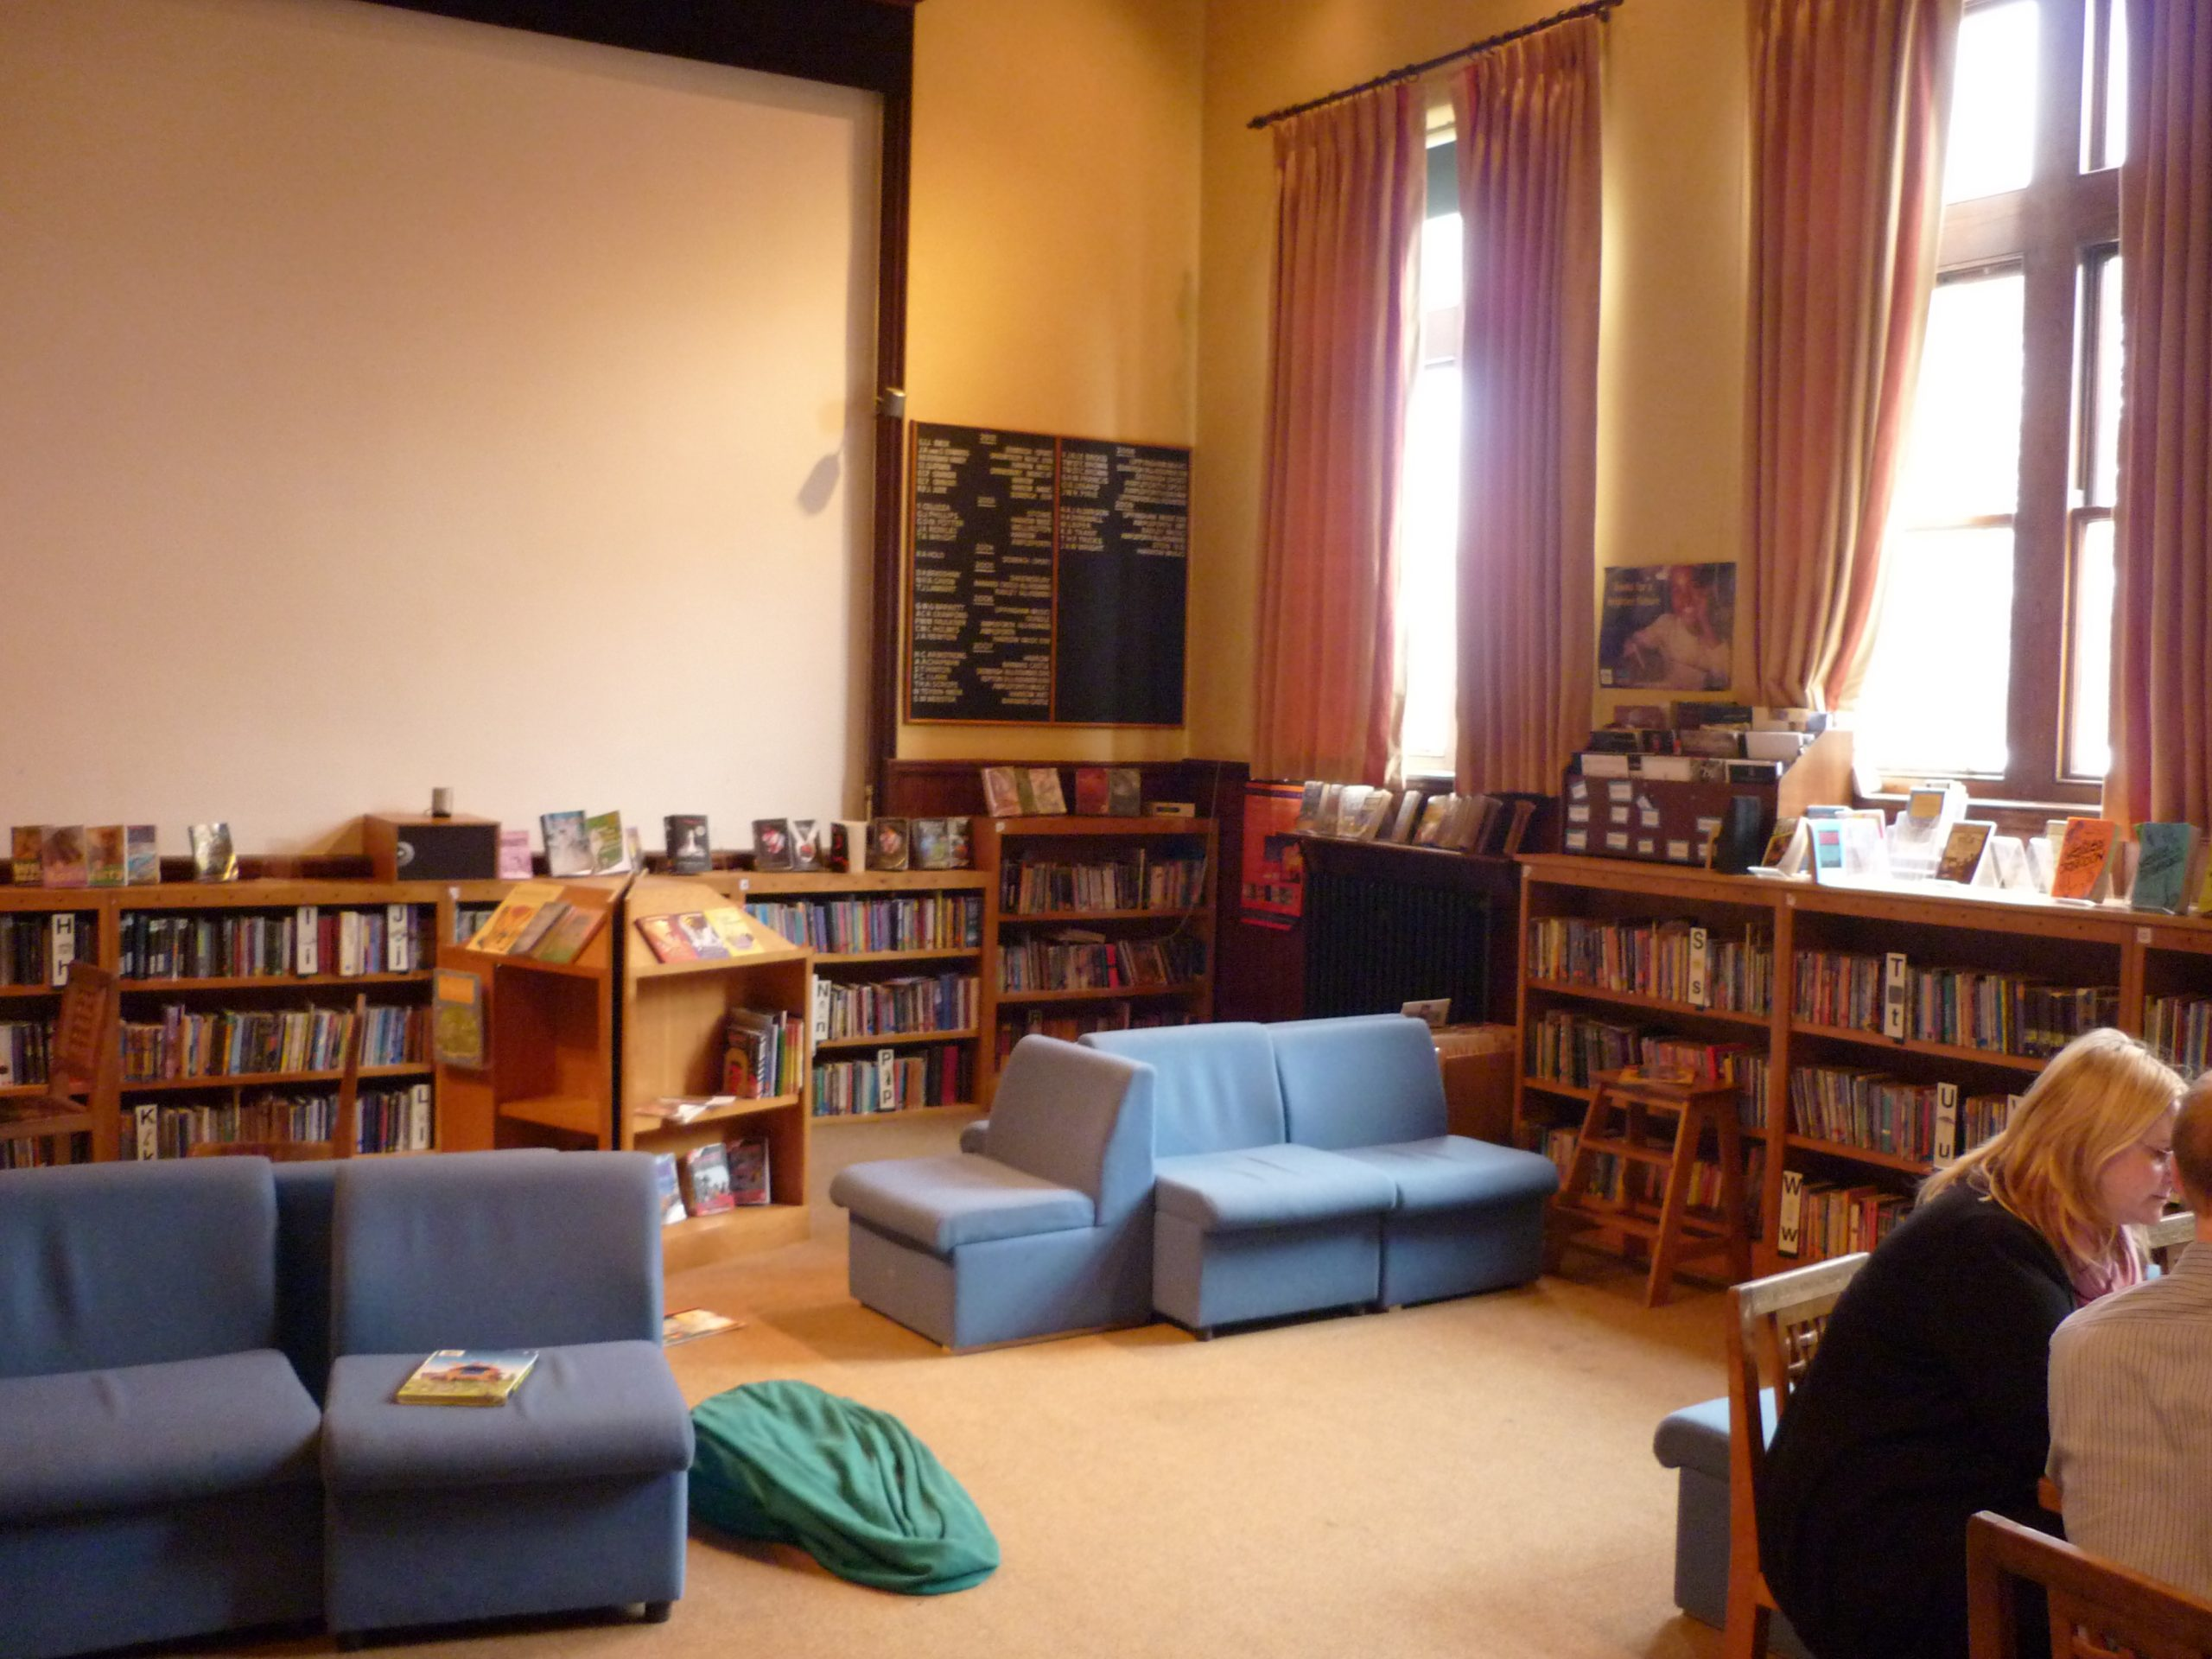 Aysgarth Library